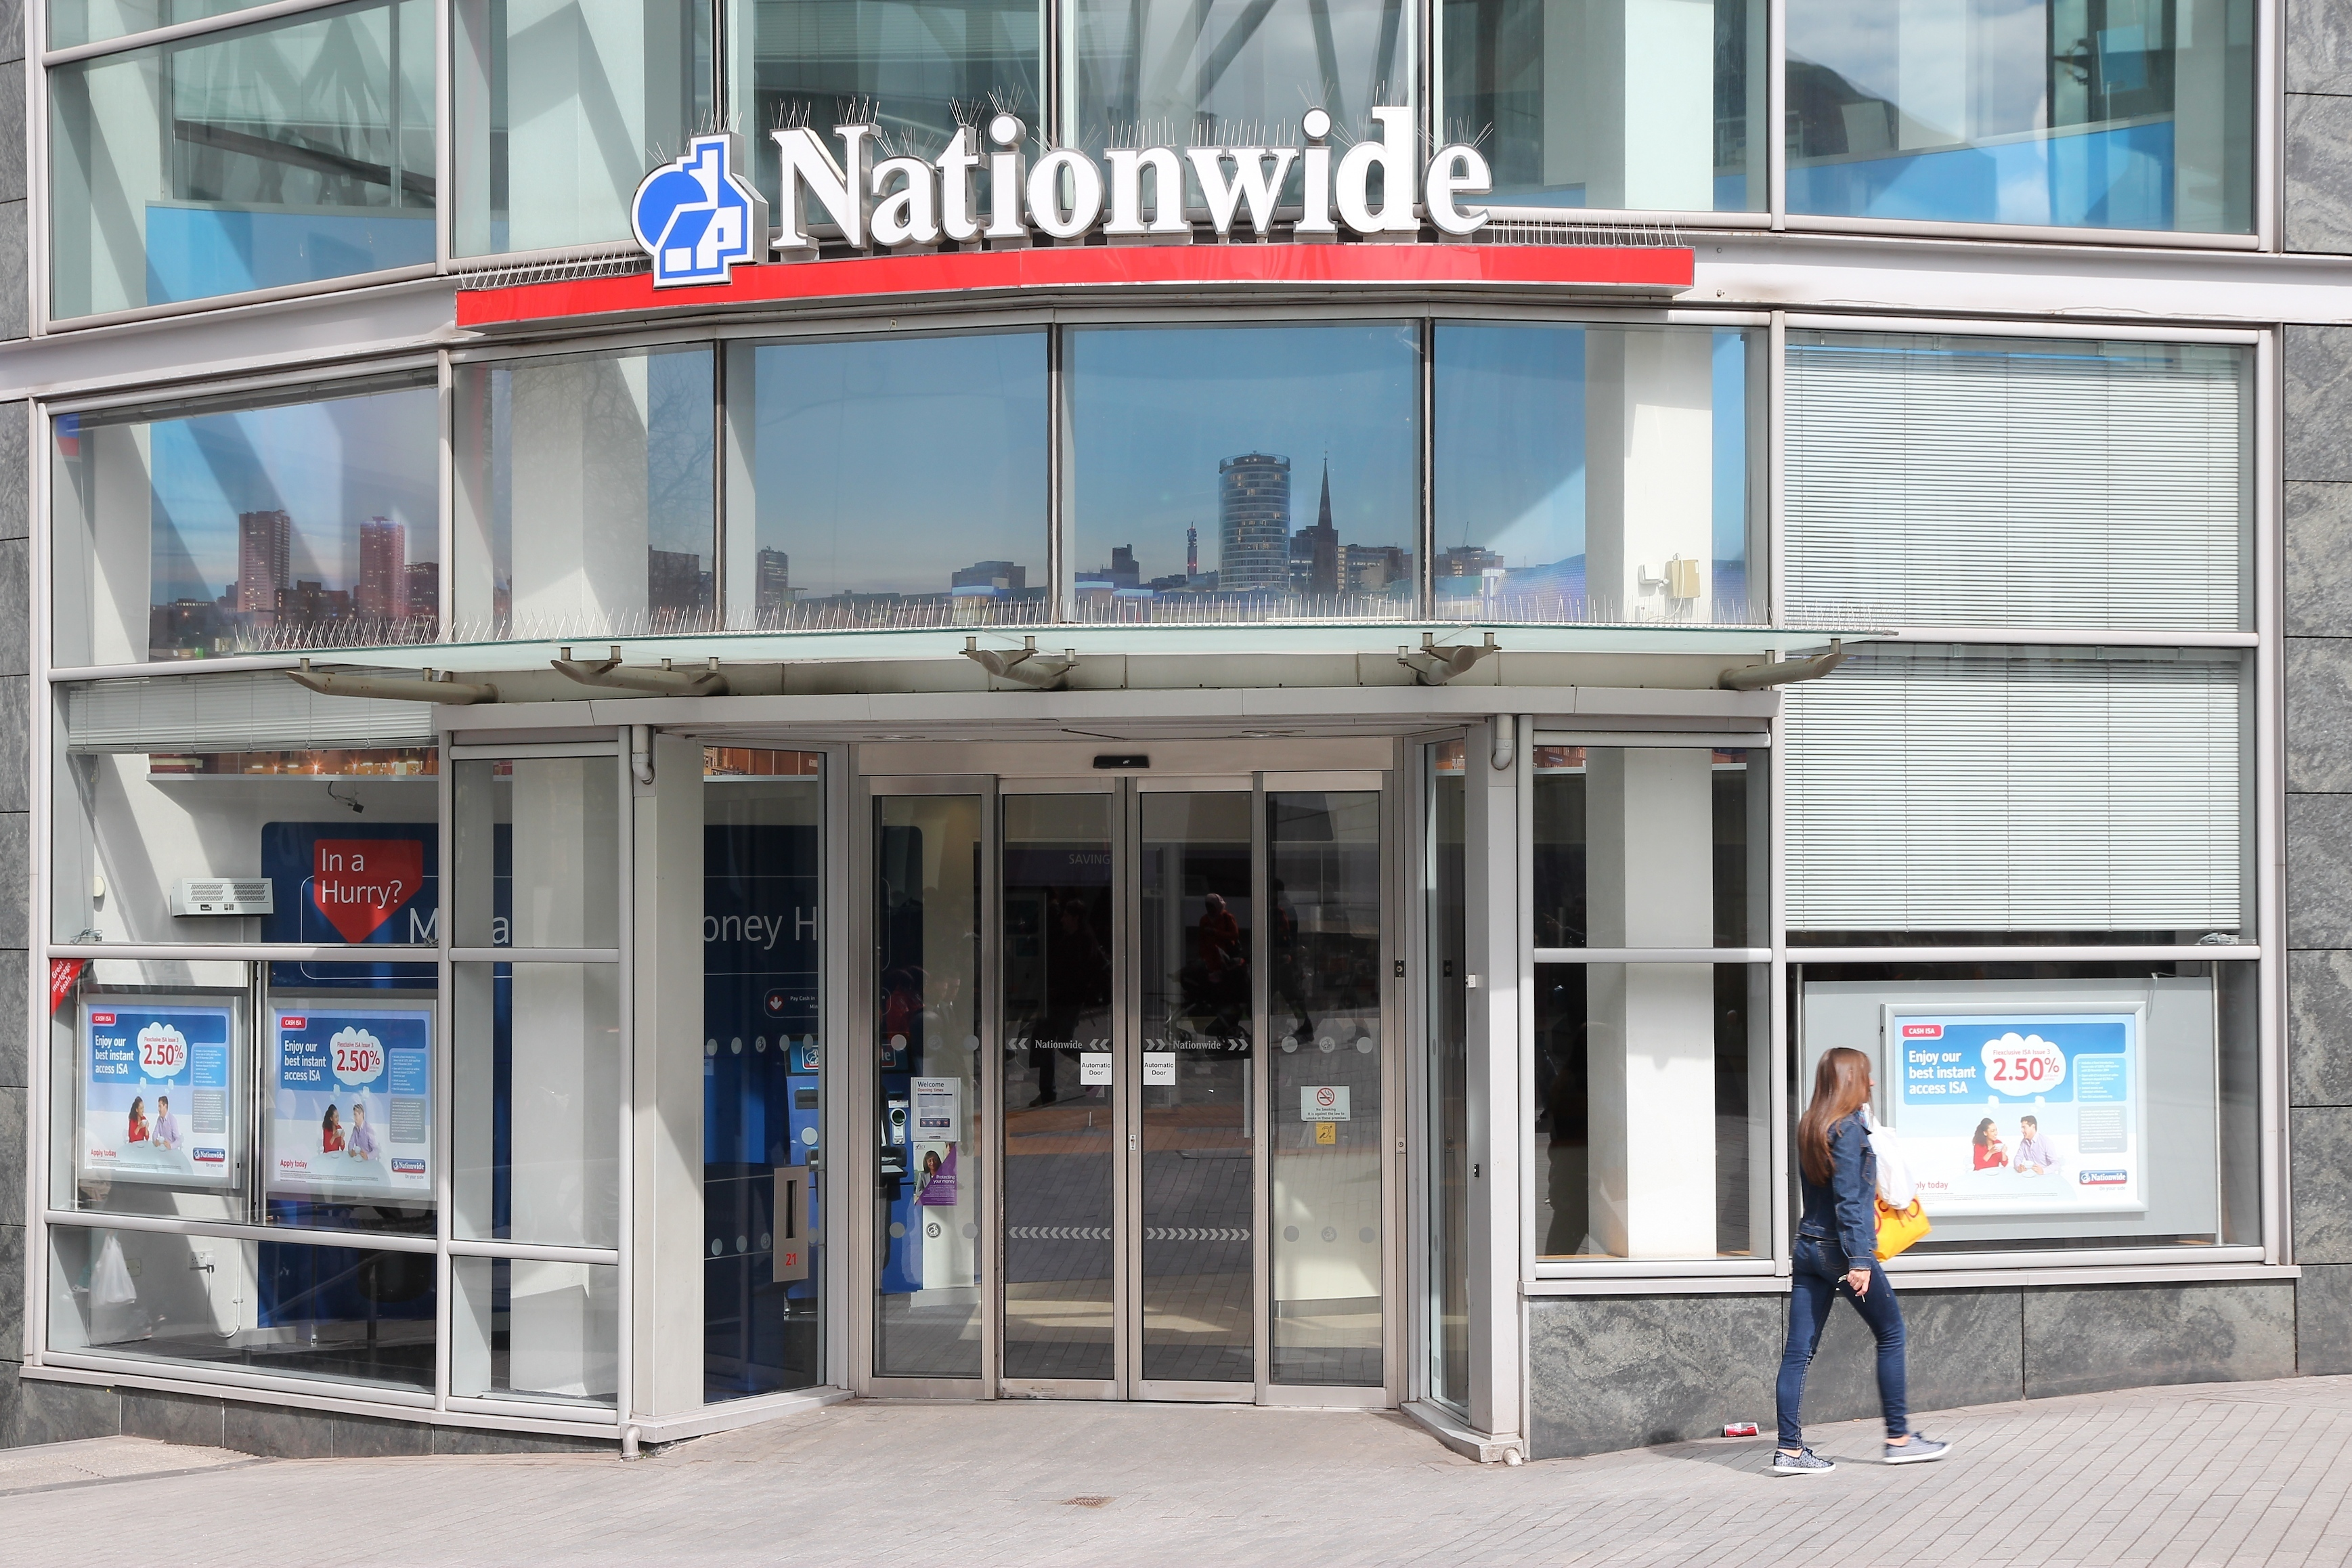 Nationwide branch. (Image: Shutterstock)